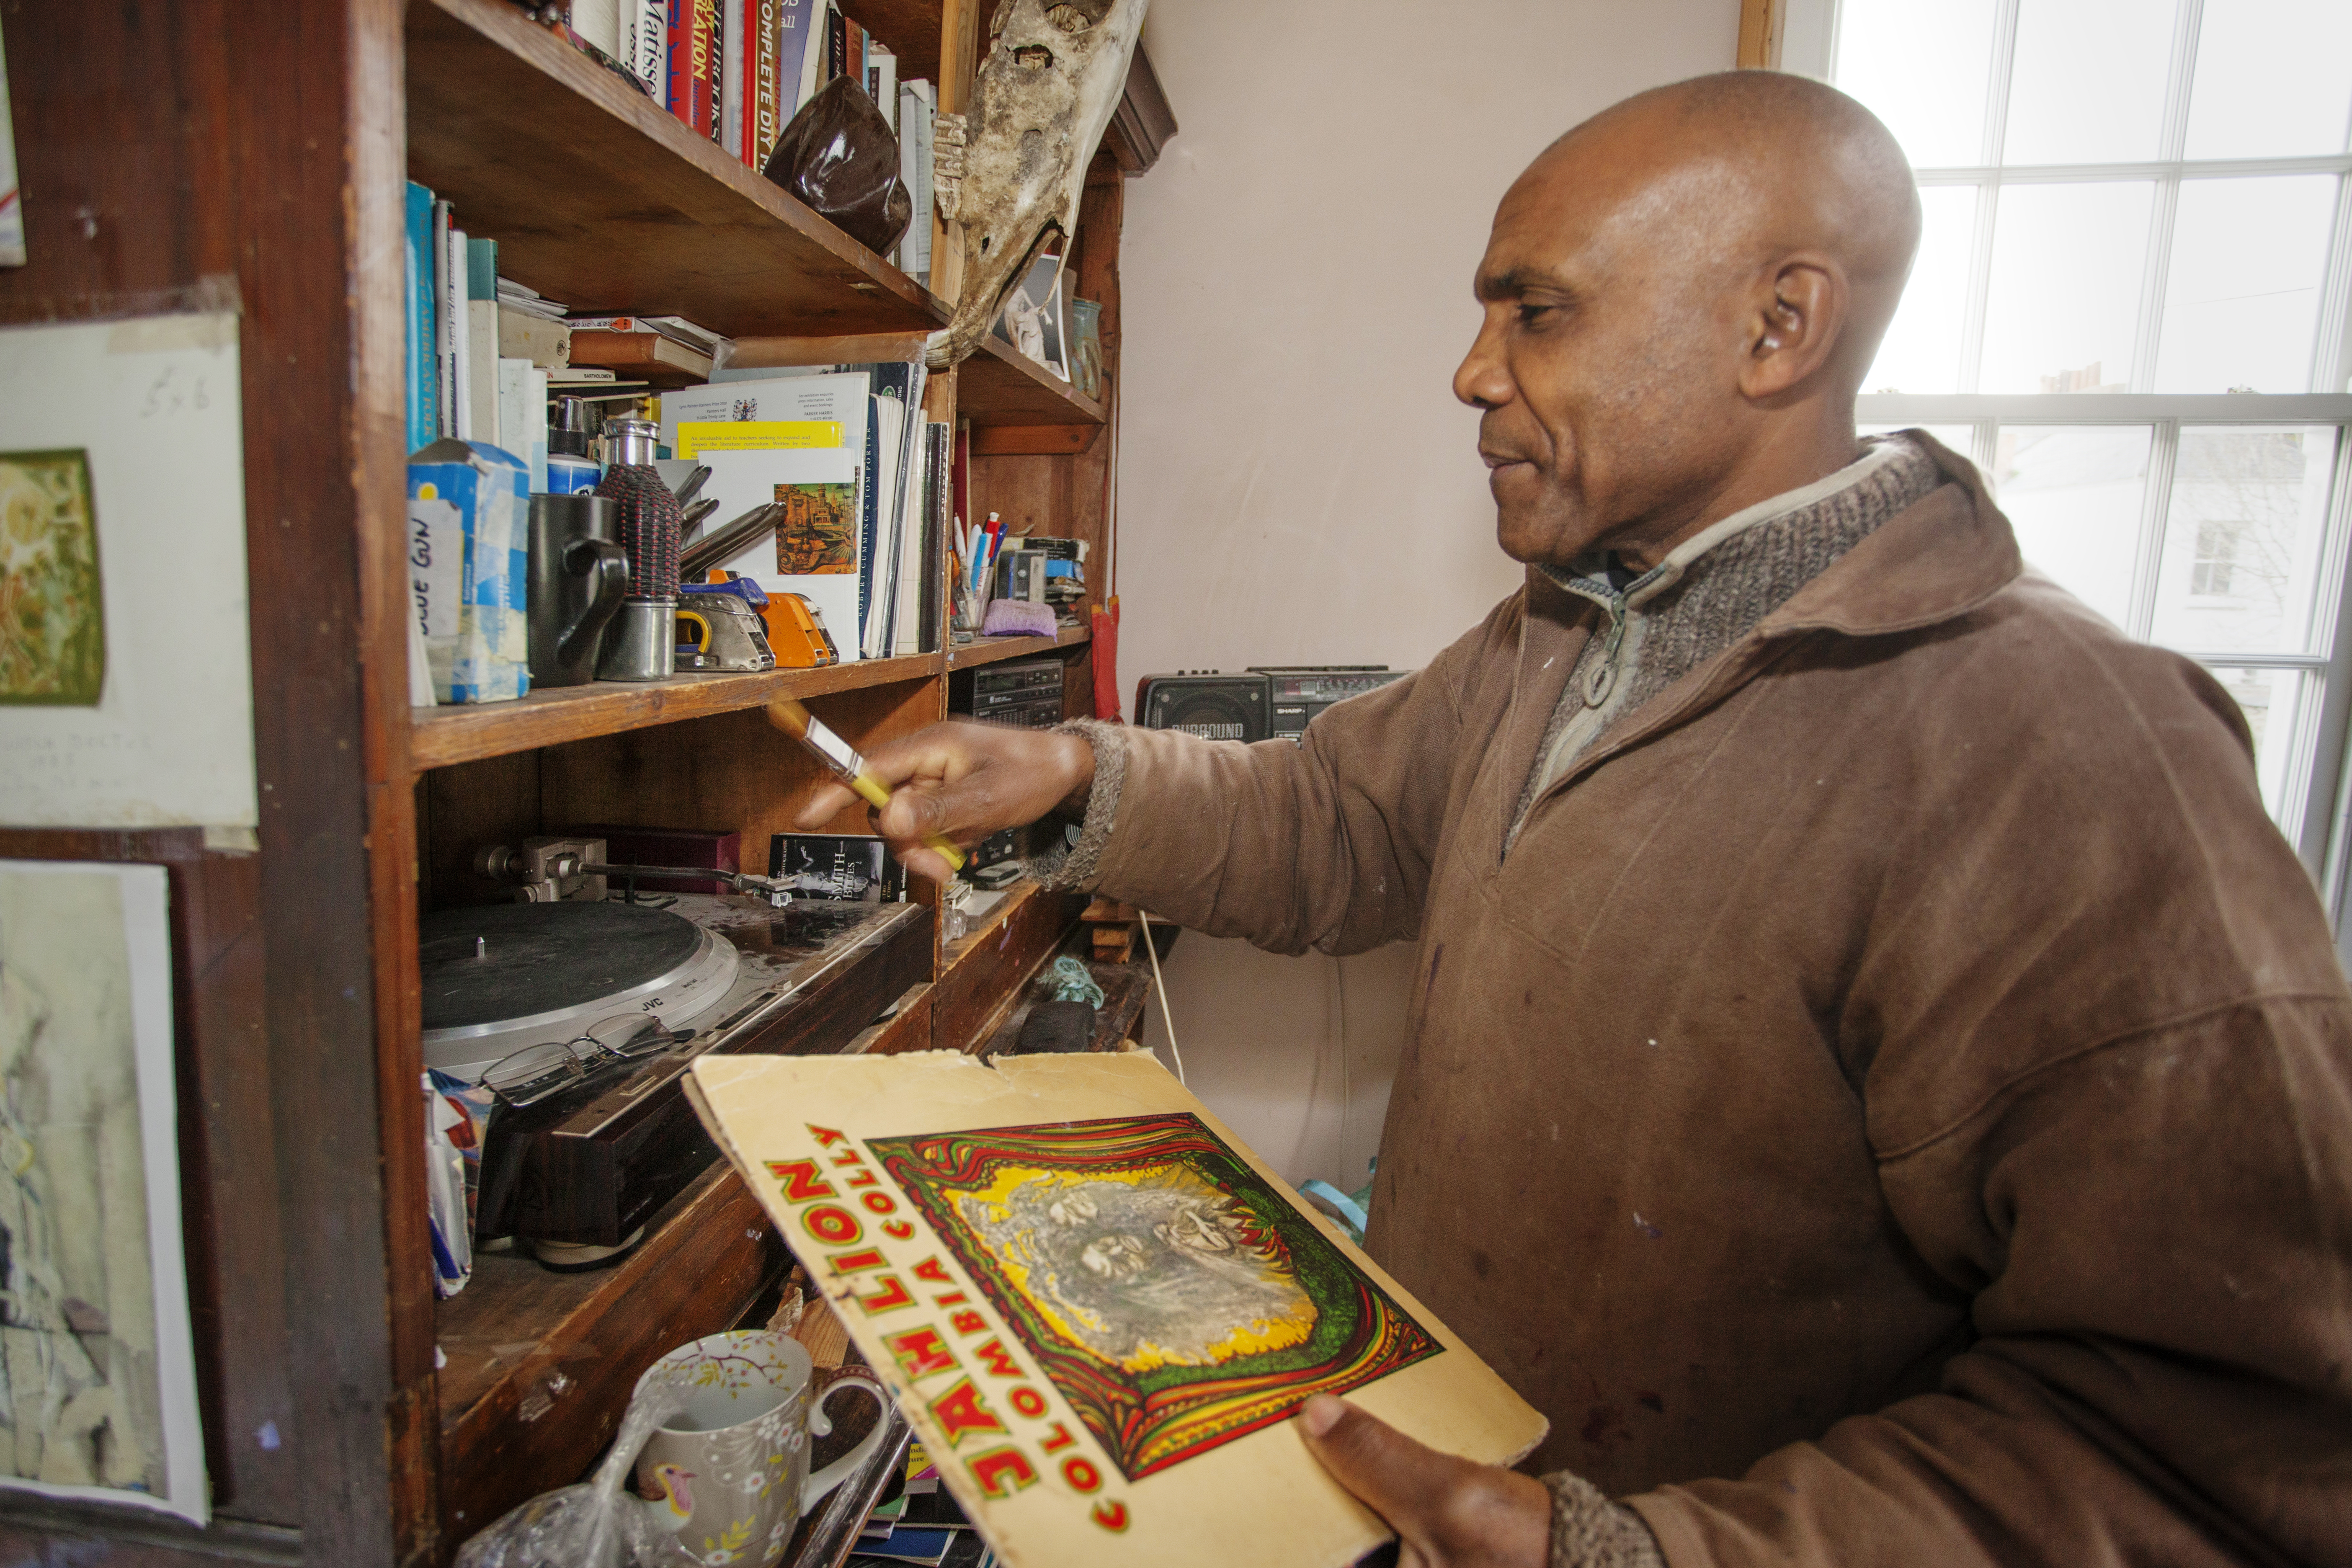 Artist Denzil Forrester in his studio.